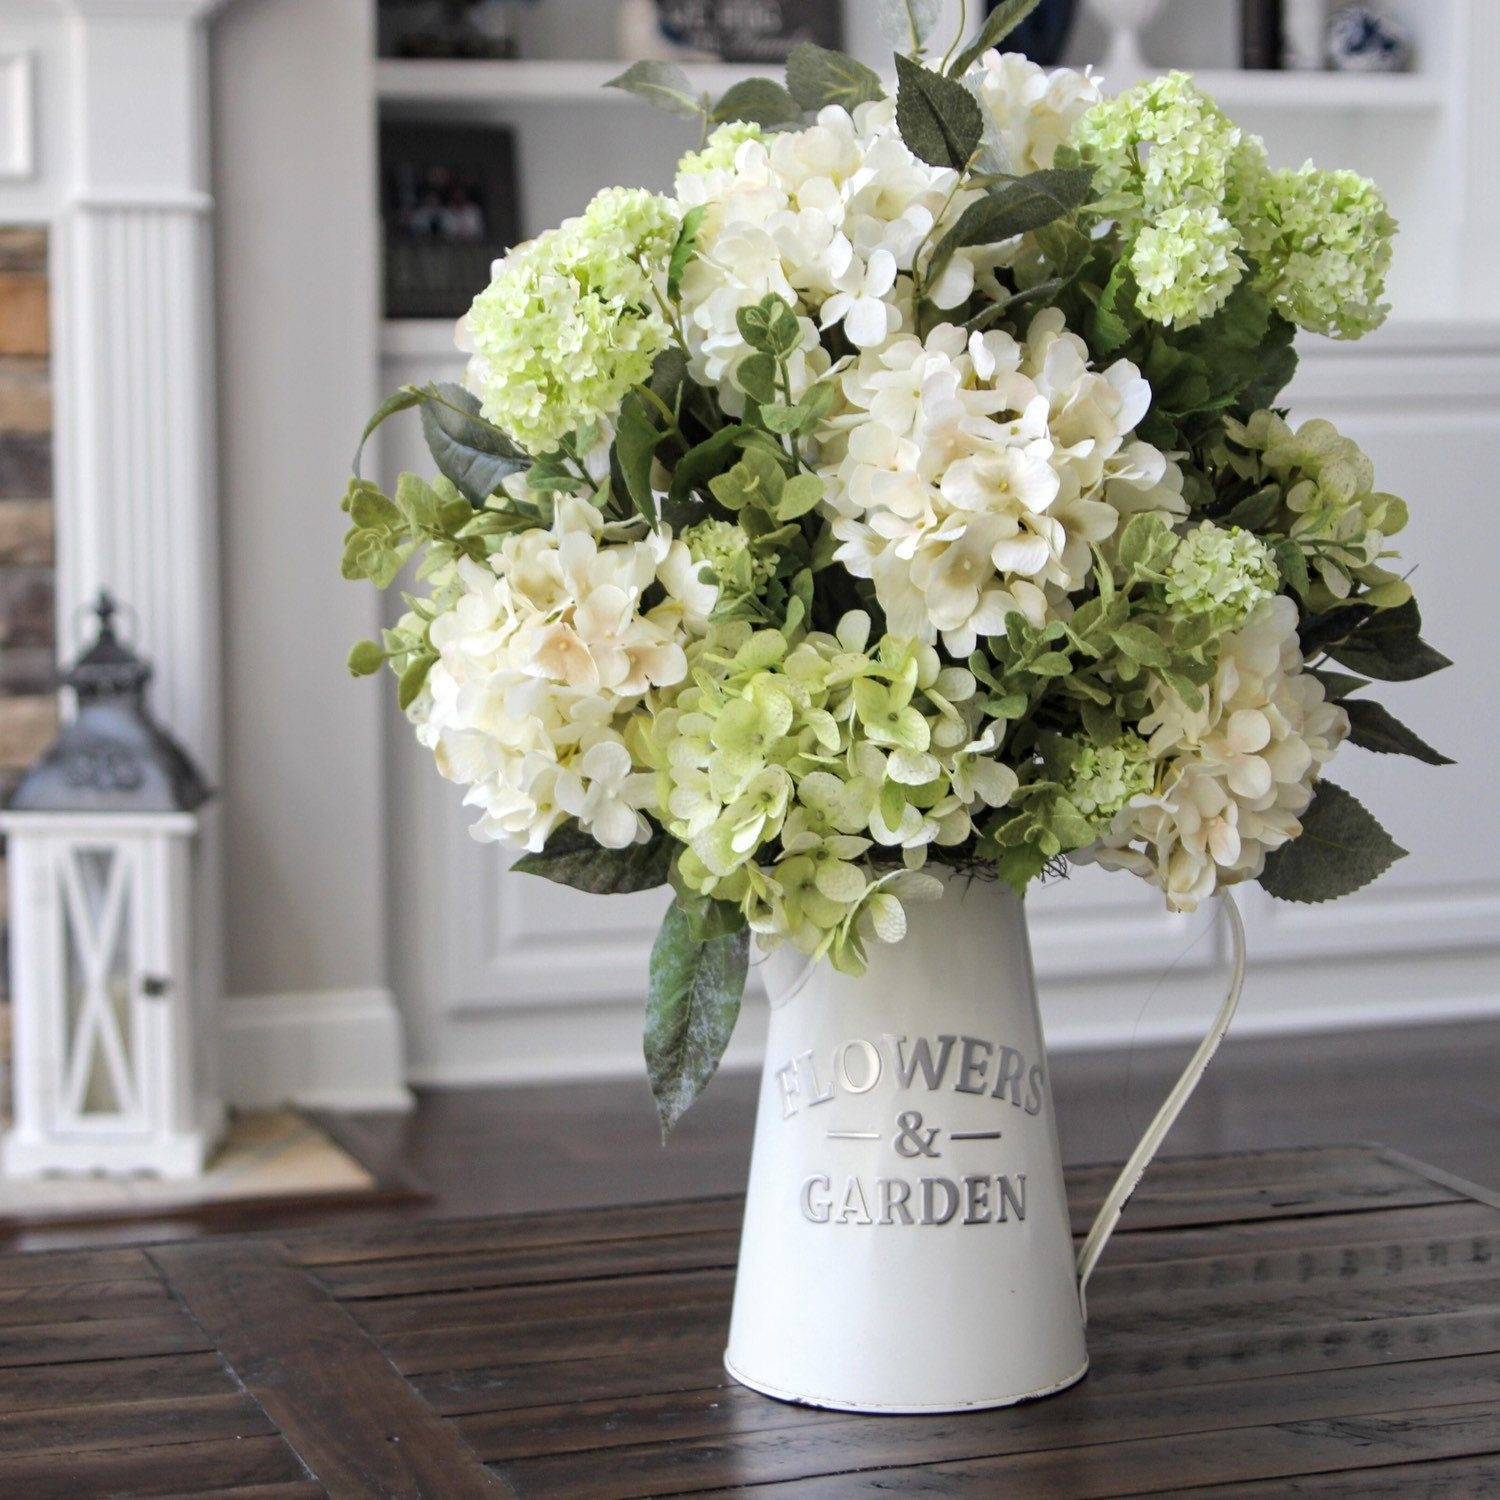 Artificial Flowers In Clear Vases Of Living Room 32 Artificial Flower Arrangements for Living Room with Regard to Living Room32 Artificial Flower Arrangements for Living Room Superb 4 Home Decor Best H